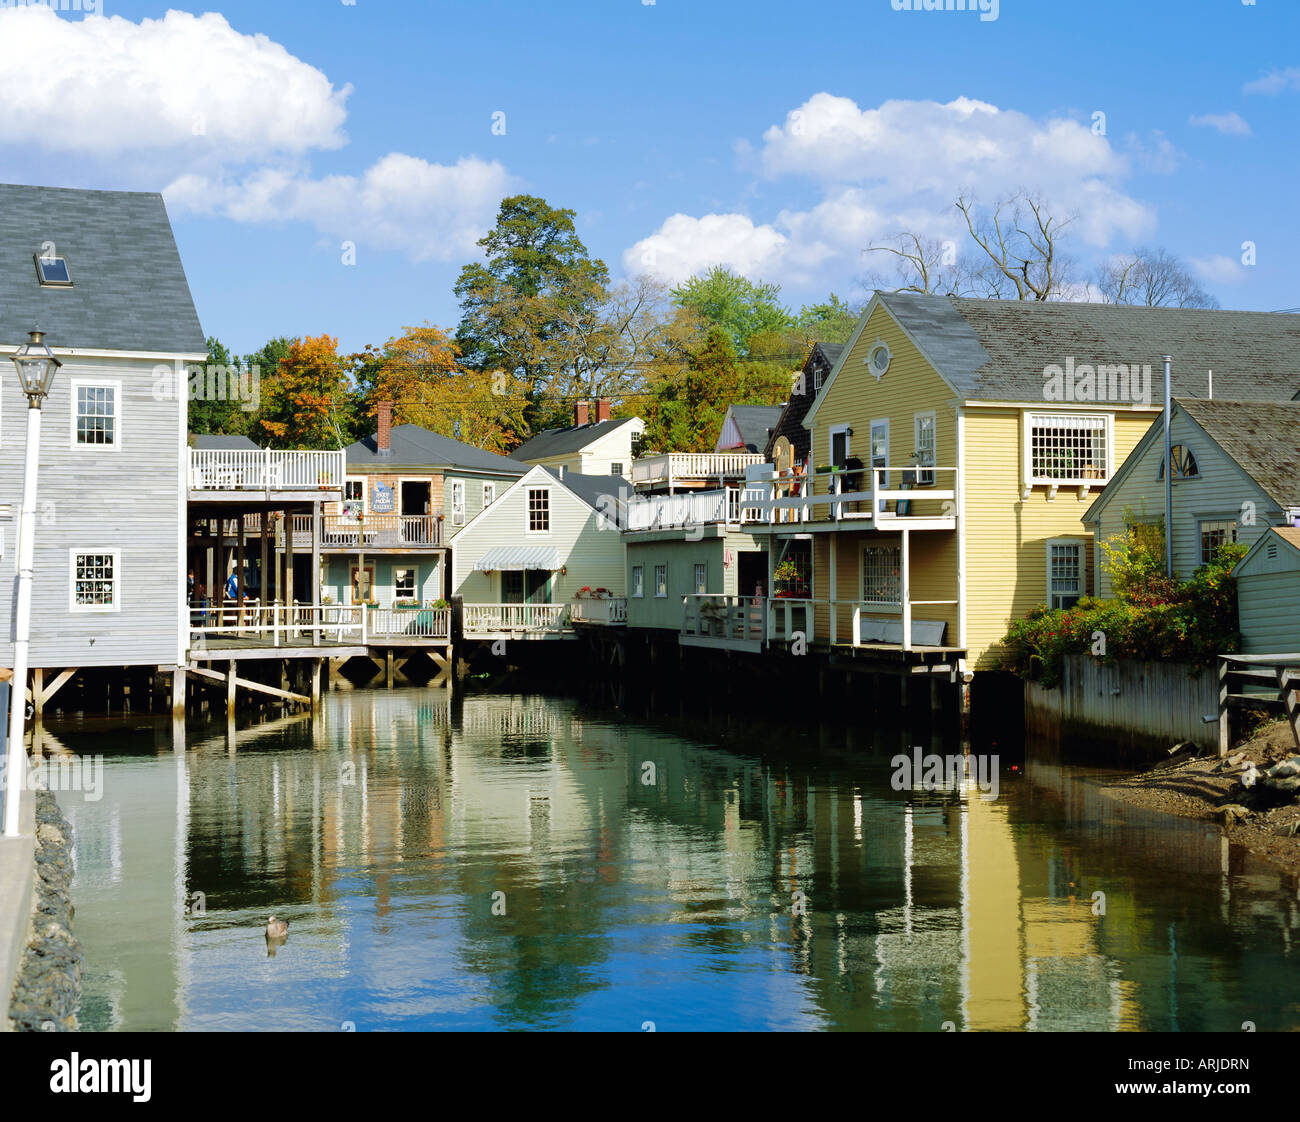 The Beach House Inn Kennebunkport Maine: Kennebunkport, Maine, New England, USA Stock Photo